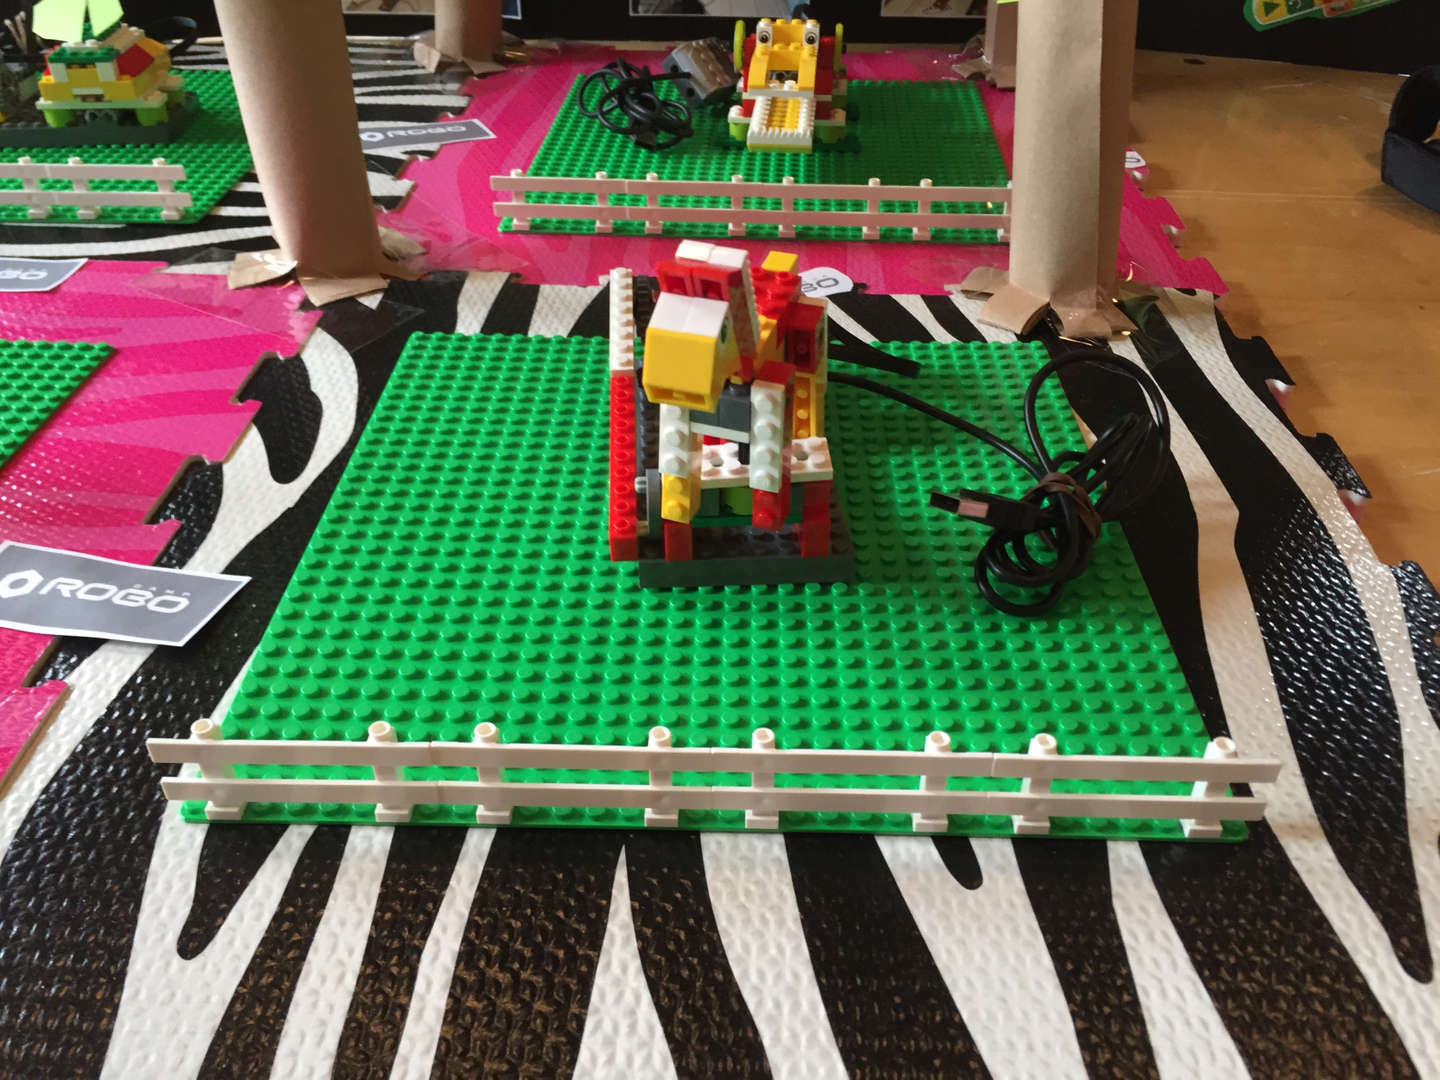 Students show how the Lego software can be programmed to move small pieces of an animal.